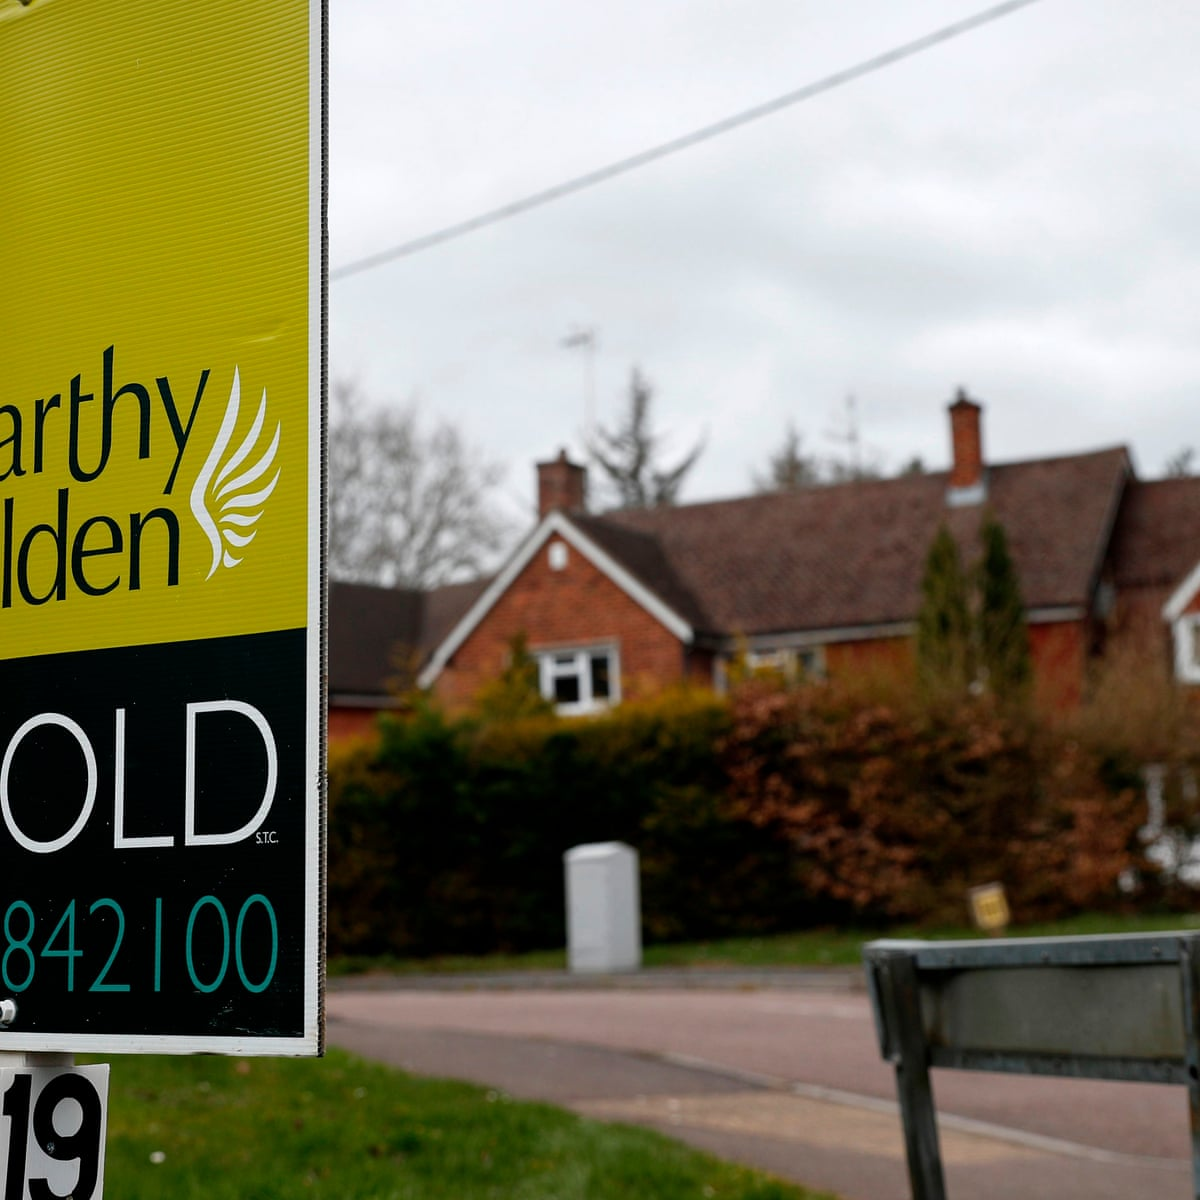 Pent Up Demand After Covid Lockdown Fuels Uk House Sales Surge Real Estate The Guardian